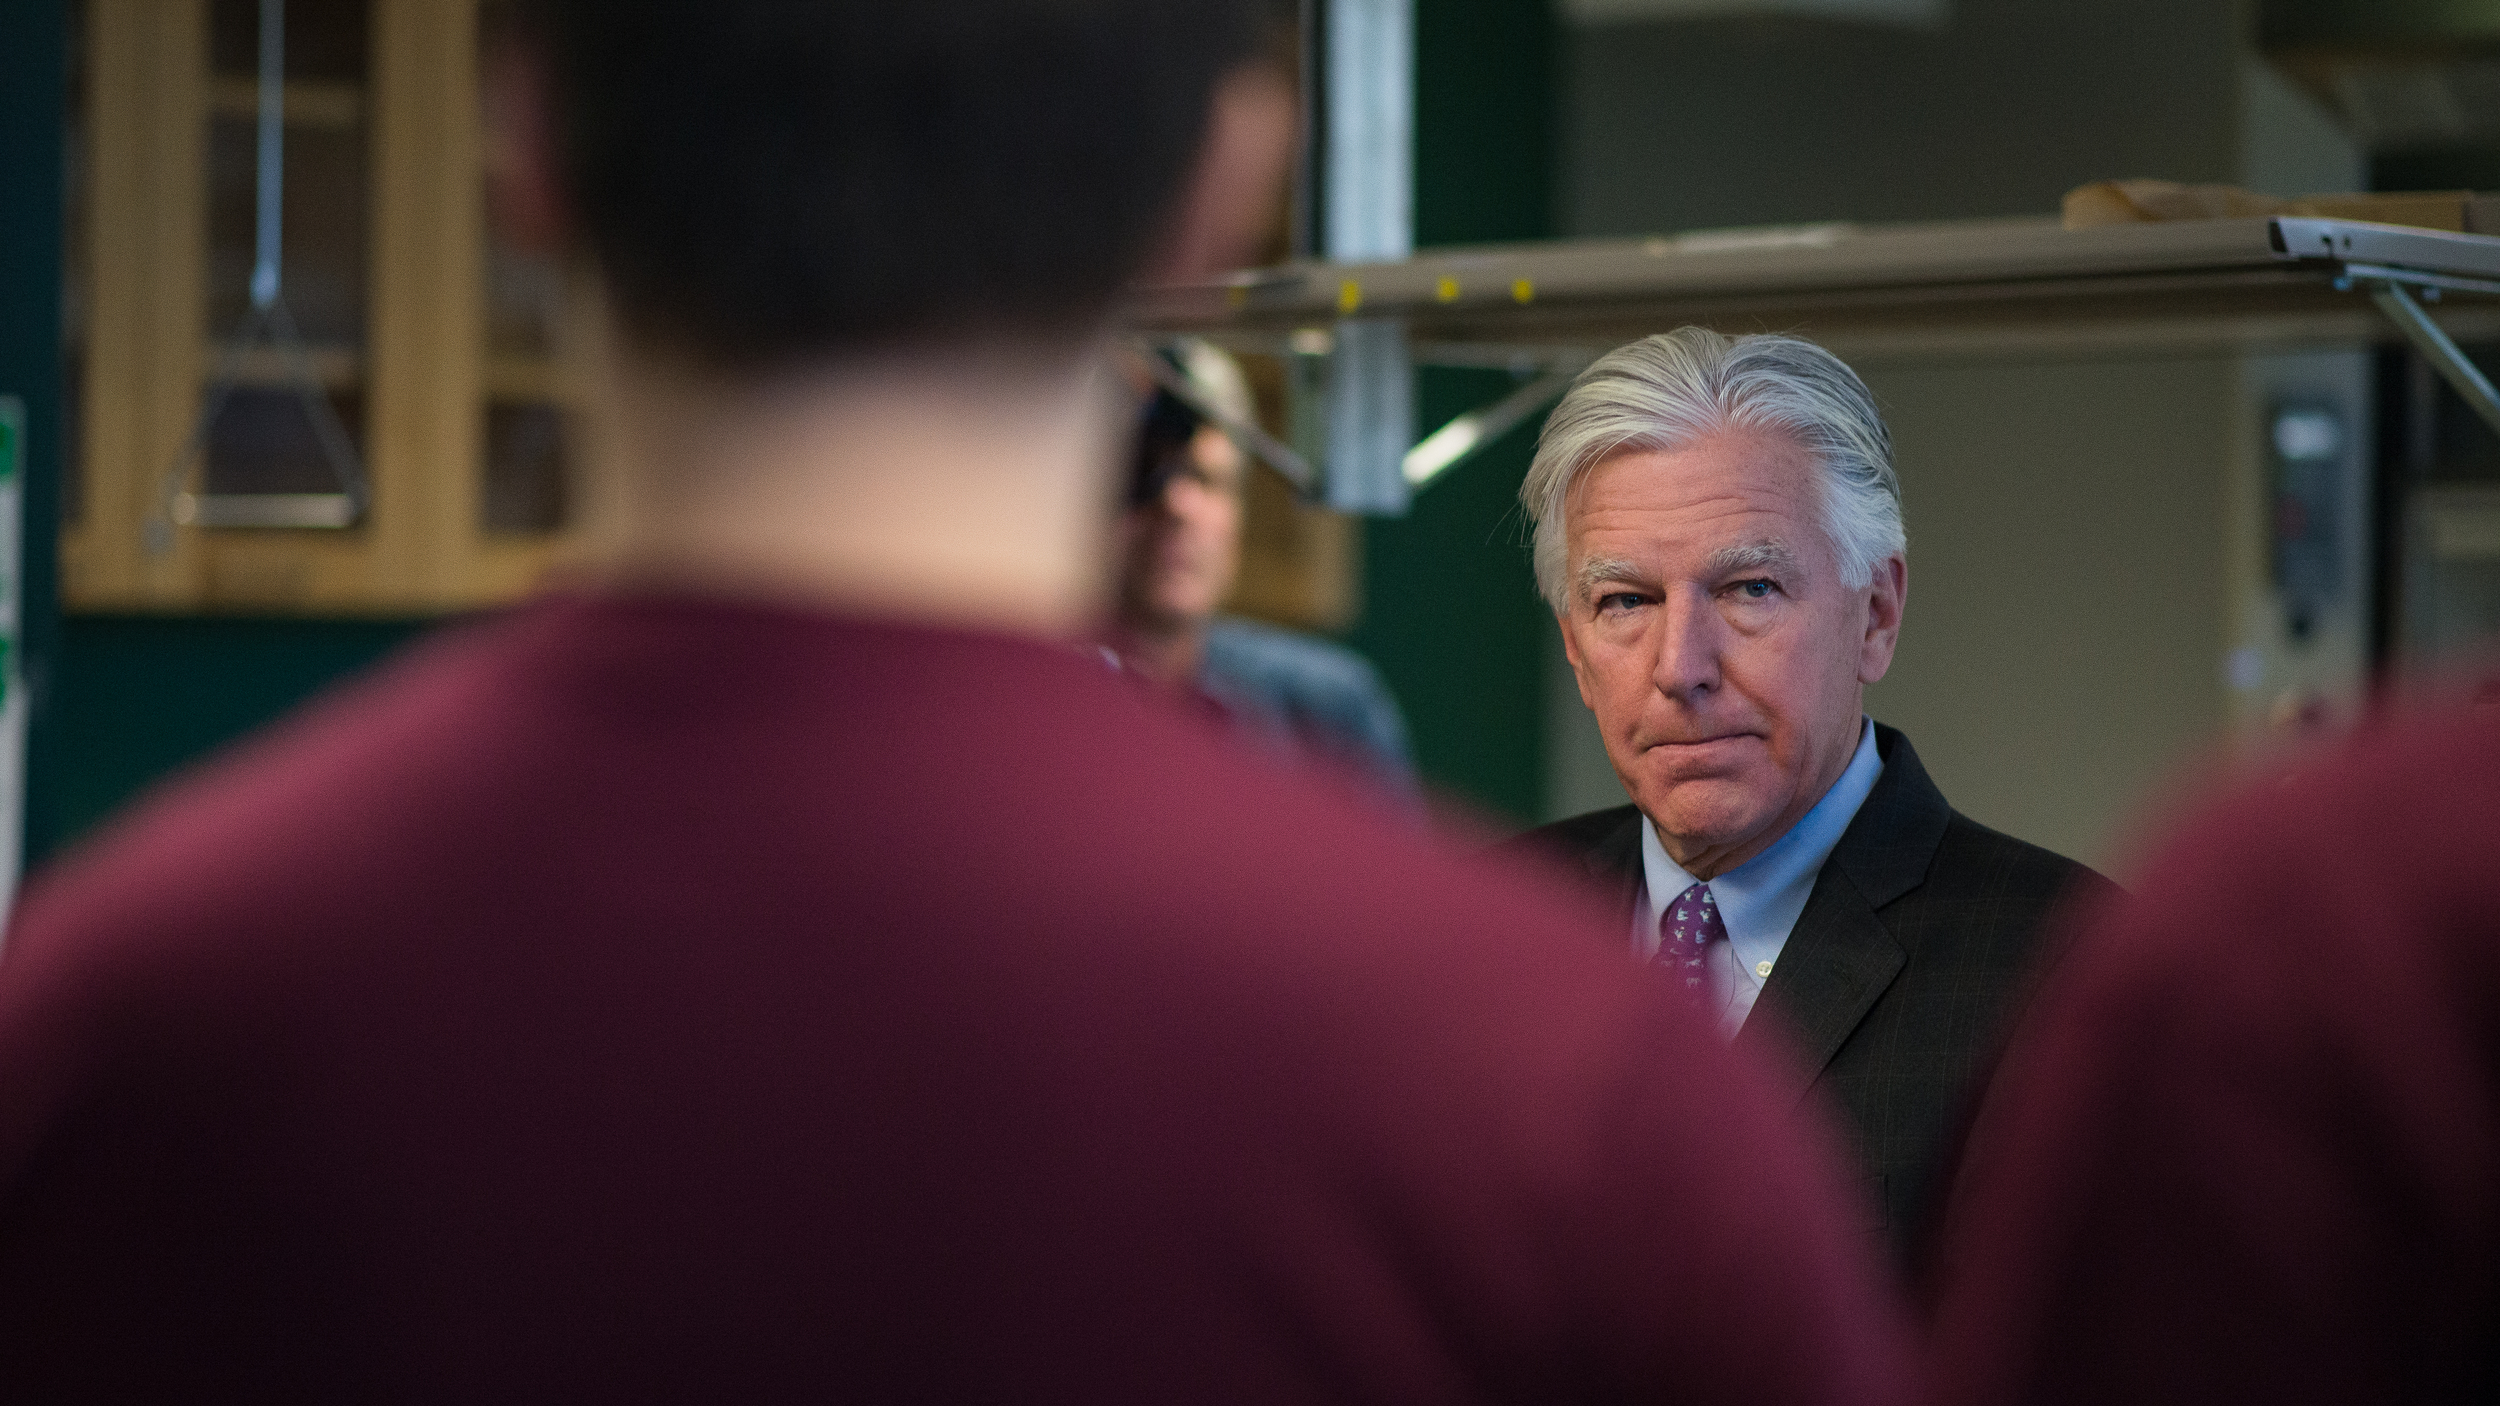 Marty Meehan during his visit to UMass Amherst on his UMass 5-in-1 inauguration tour. Photo by Judith Gibson-Okunieff. (Nov. 9, 2015)